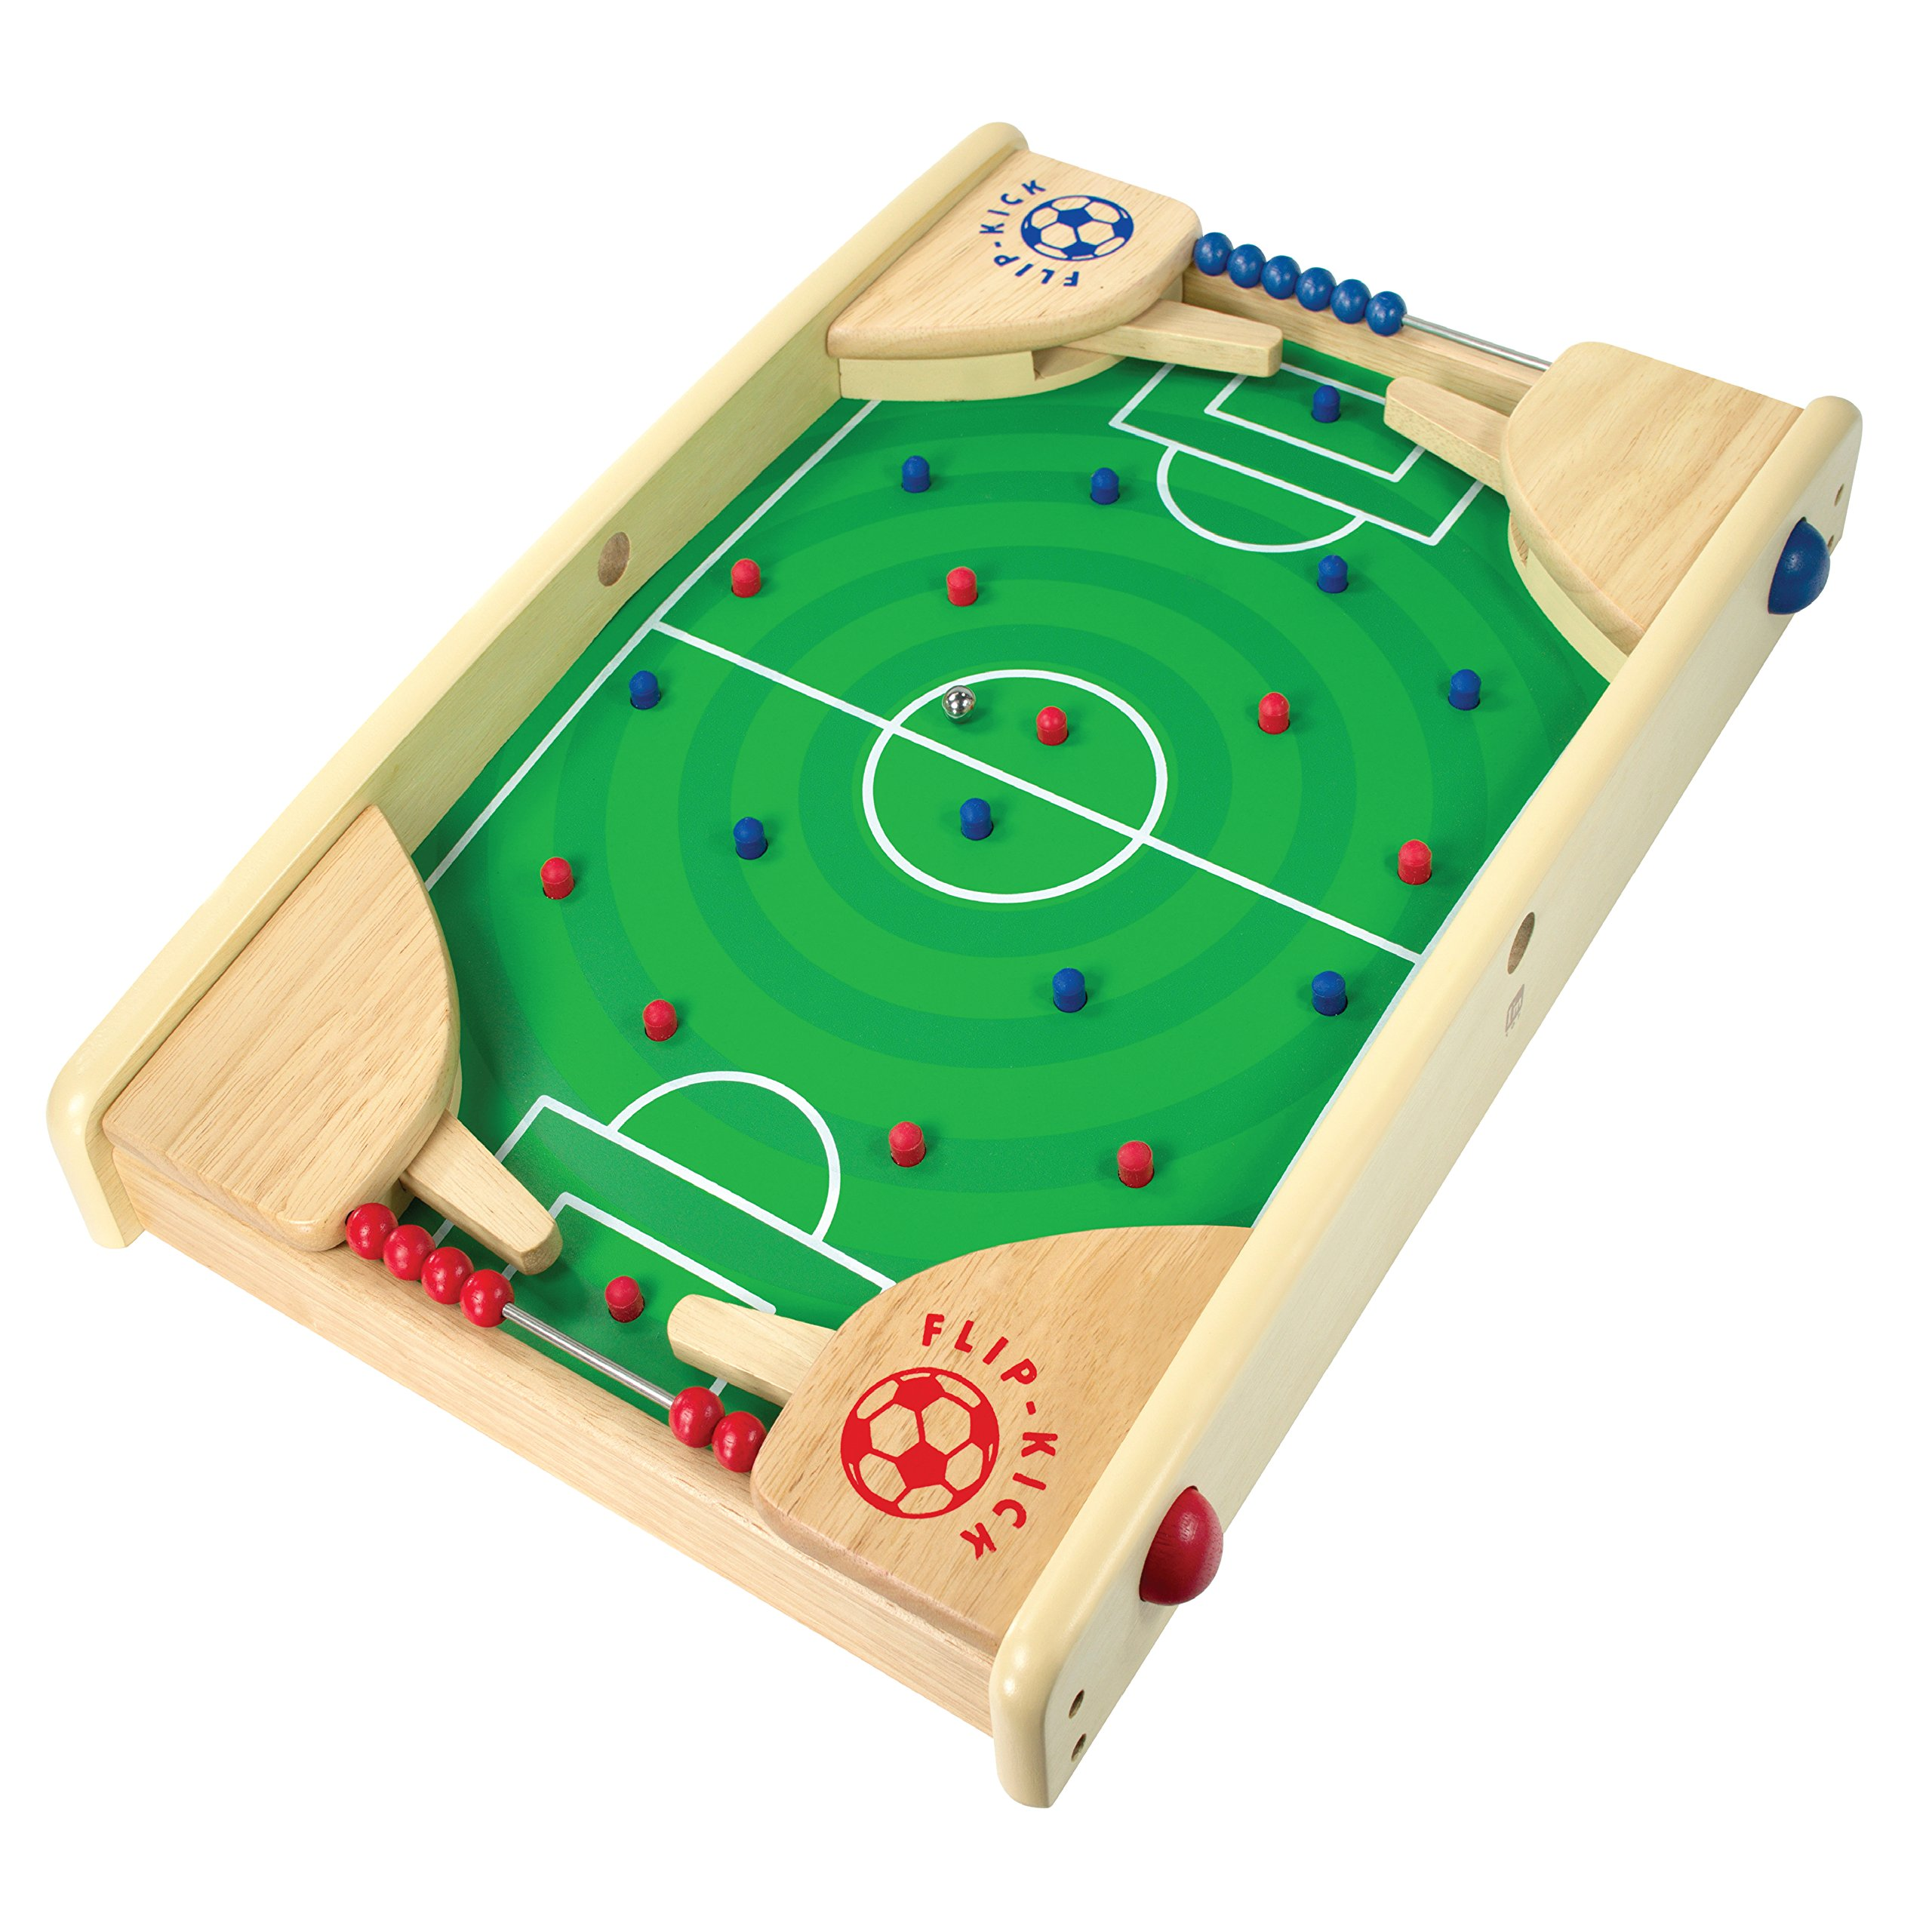 I/M Wooden Tabletop Football/Soccer Pinball Games, Indoor Portable Sport Table Board for Kids and Family